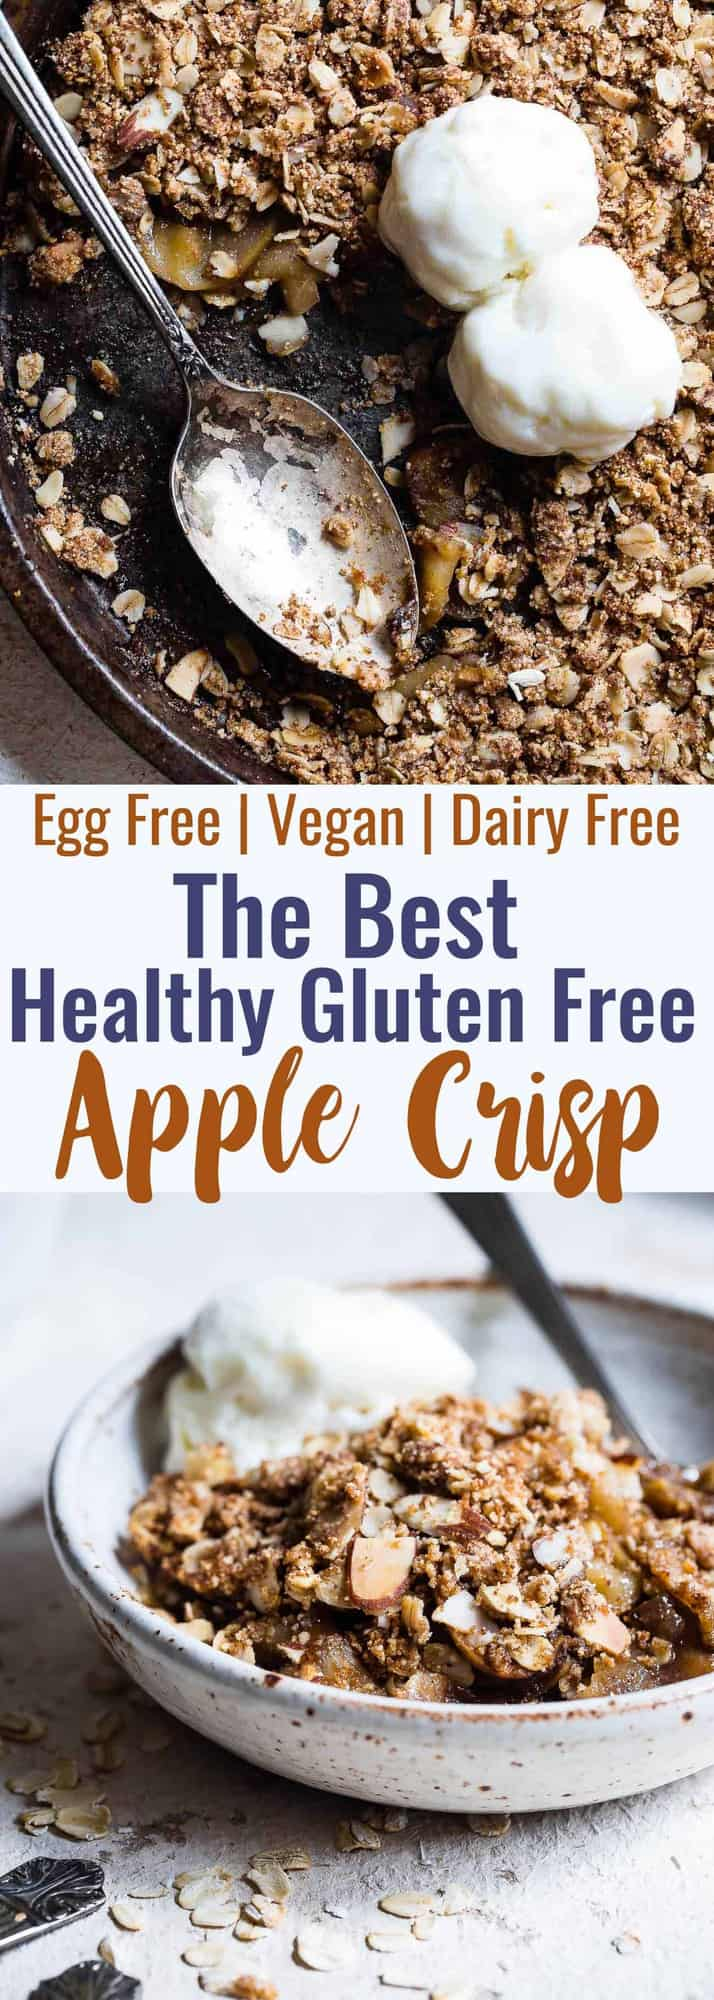 Easy Vegan Gluten Free Apple Crisp - Made with SUPER simple, wholesome ingredients and is perfectly spicy-sweet and yummy! The perfect, cozy fall dessert that you will never believe is gluten/dairy/egg free and healthy! | #Foodfaithfitness | #Glutenfree #Vegan #Dairyfree #Healthy #Eggfree